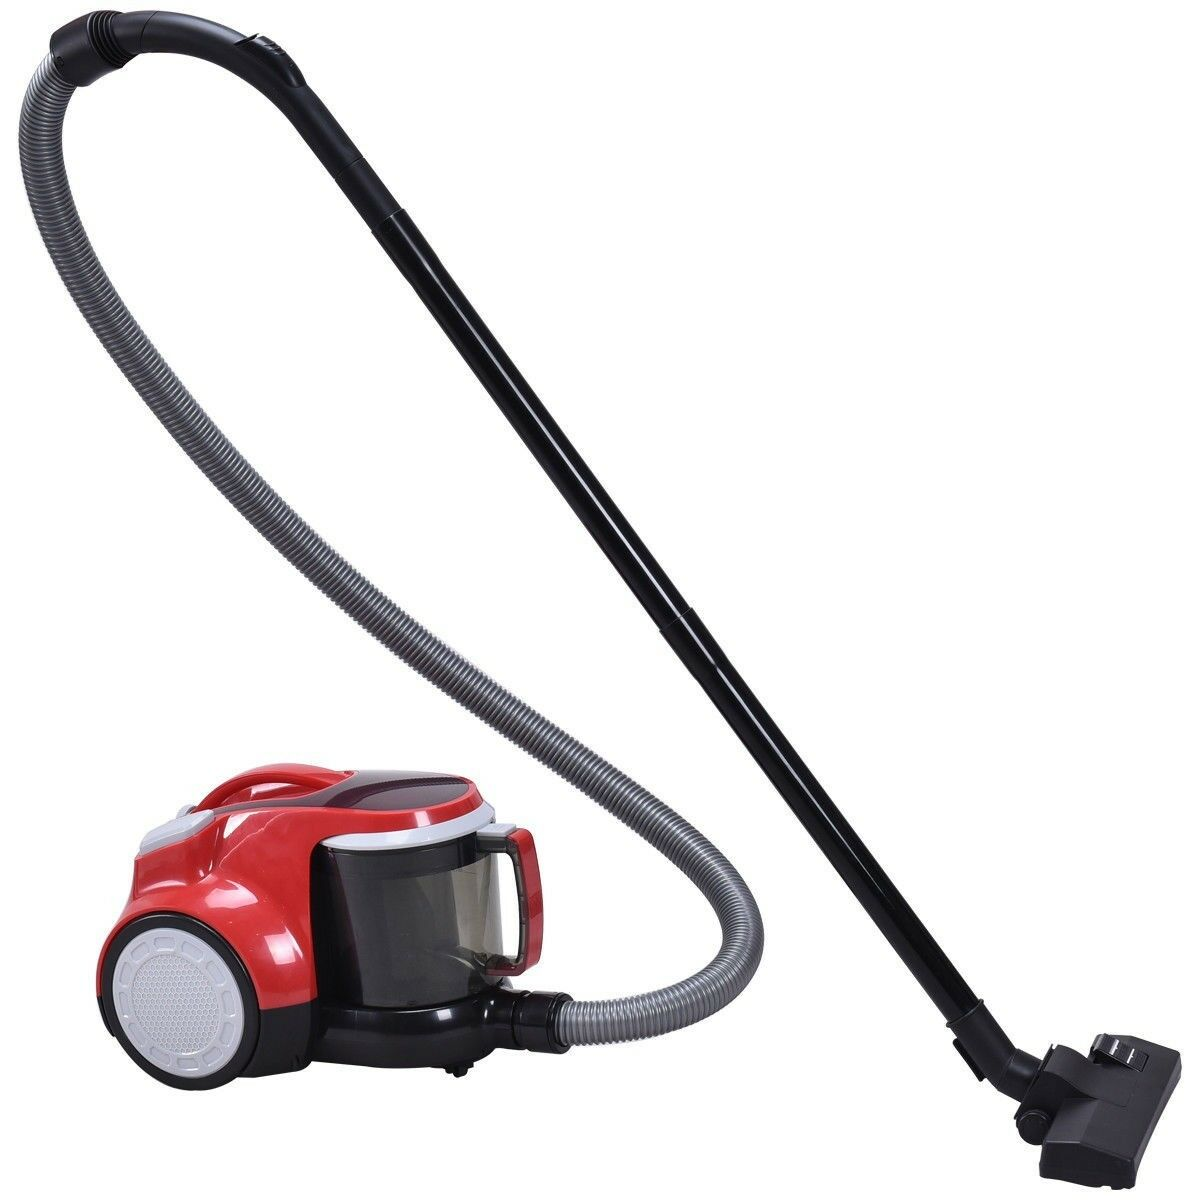 Handheld Upgraded Bagless Canister Cord Rewind Vacuum Cleaner w  HEPA Filtration